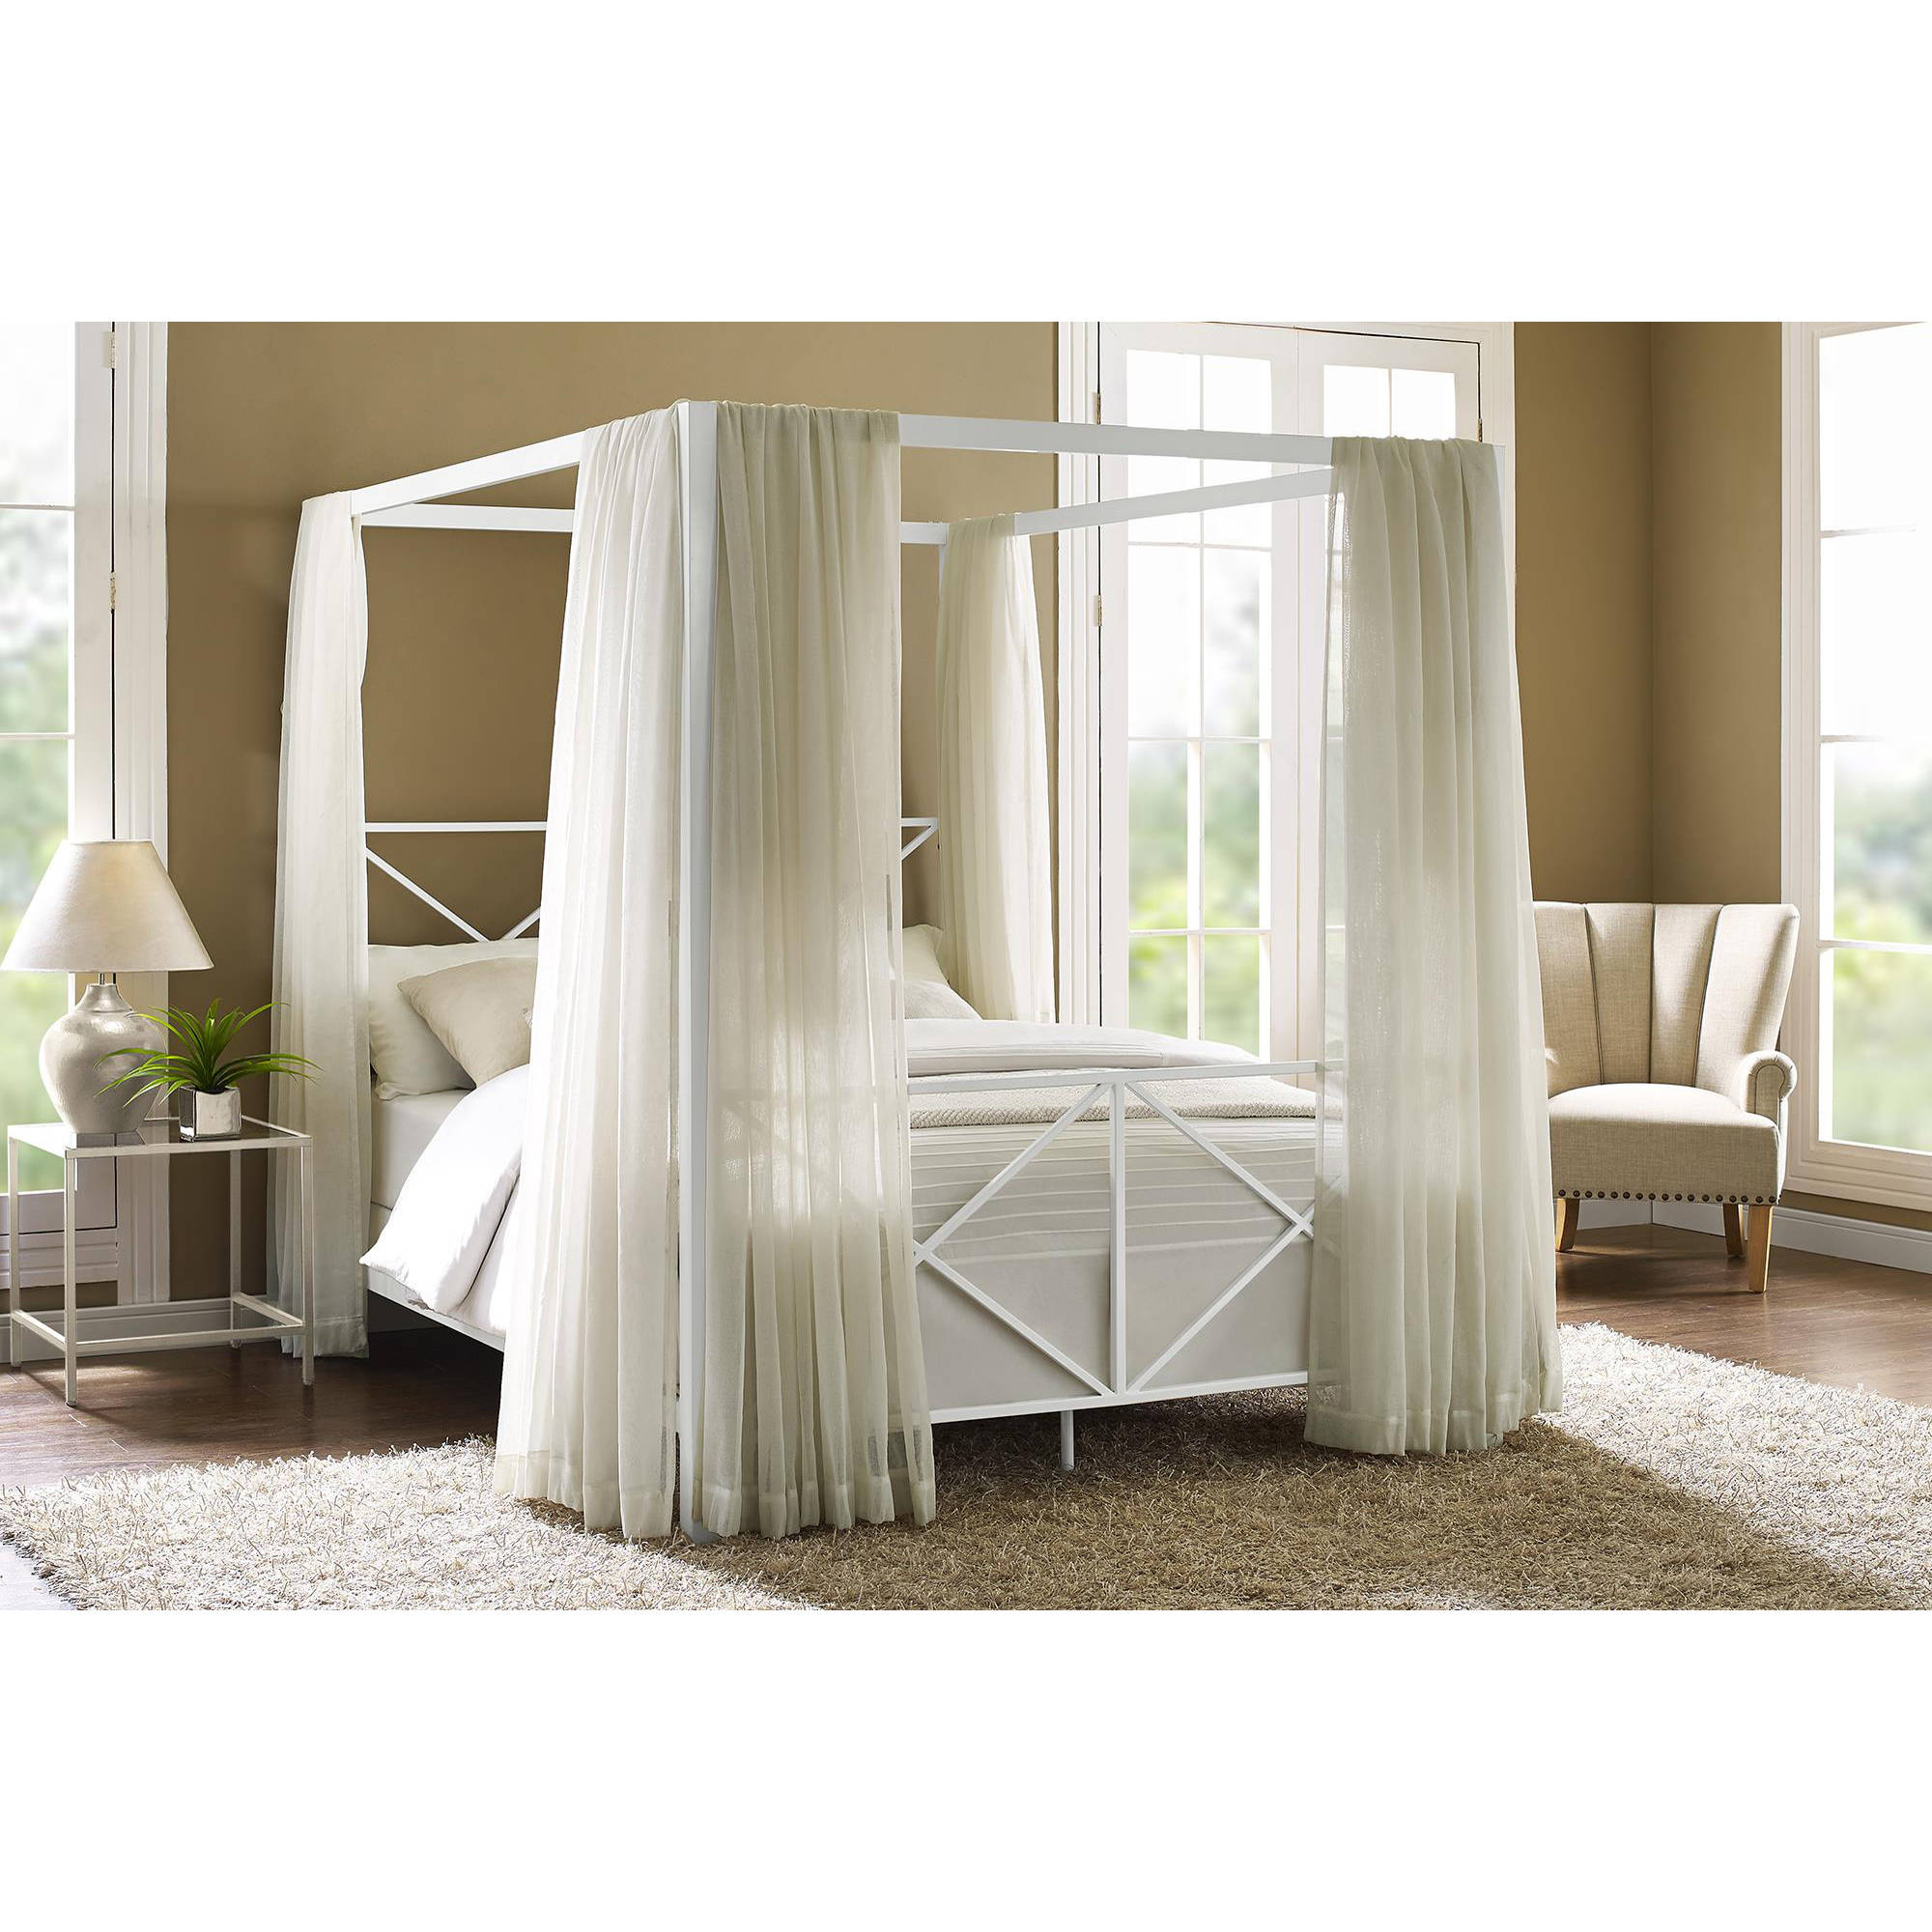 Canopy Queen Bed 4 Corners Post Bed Curtain Canopy